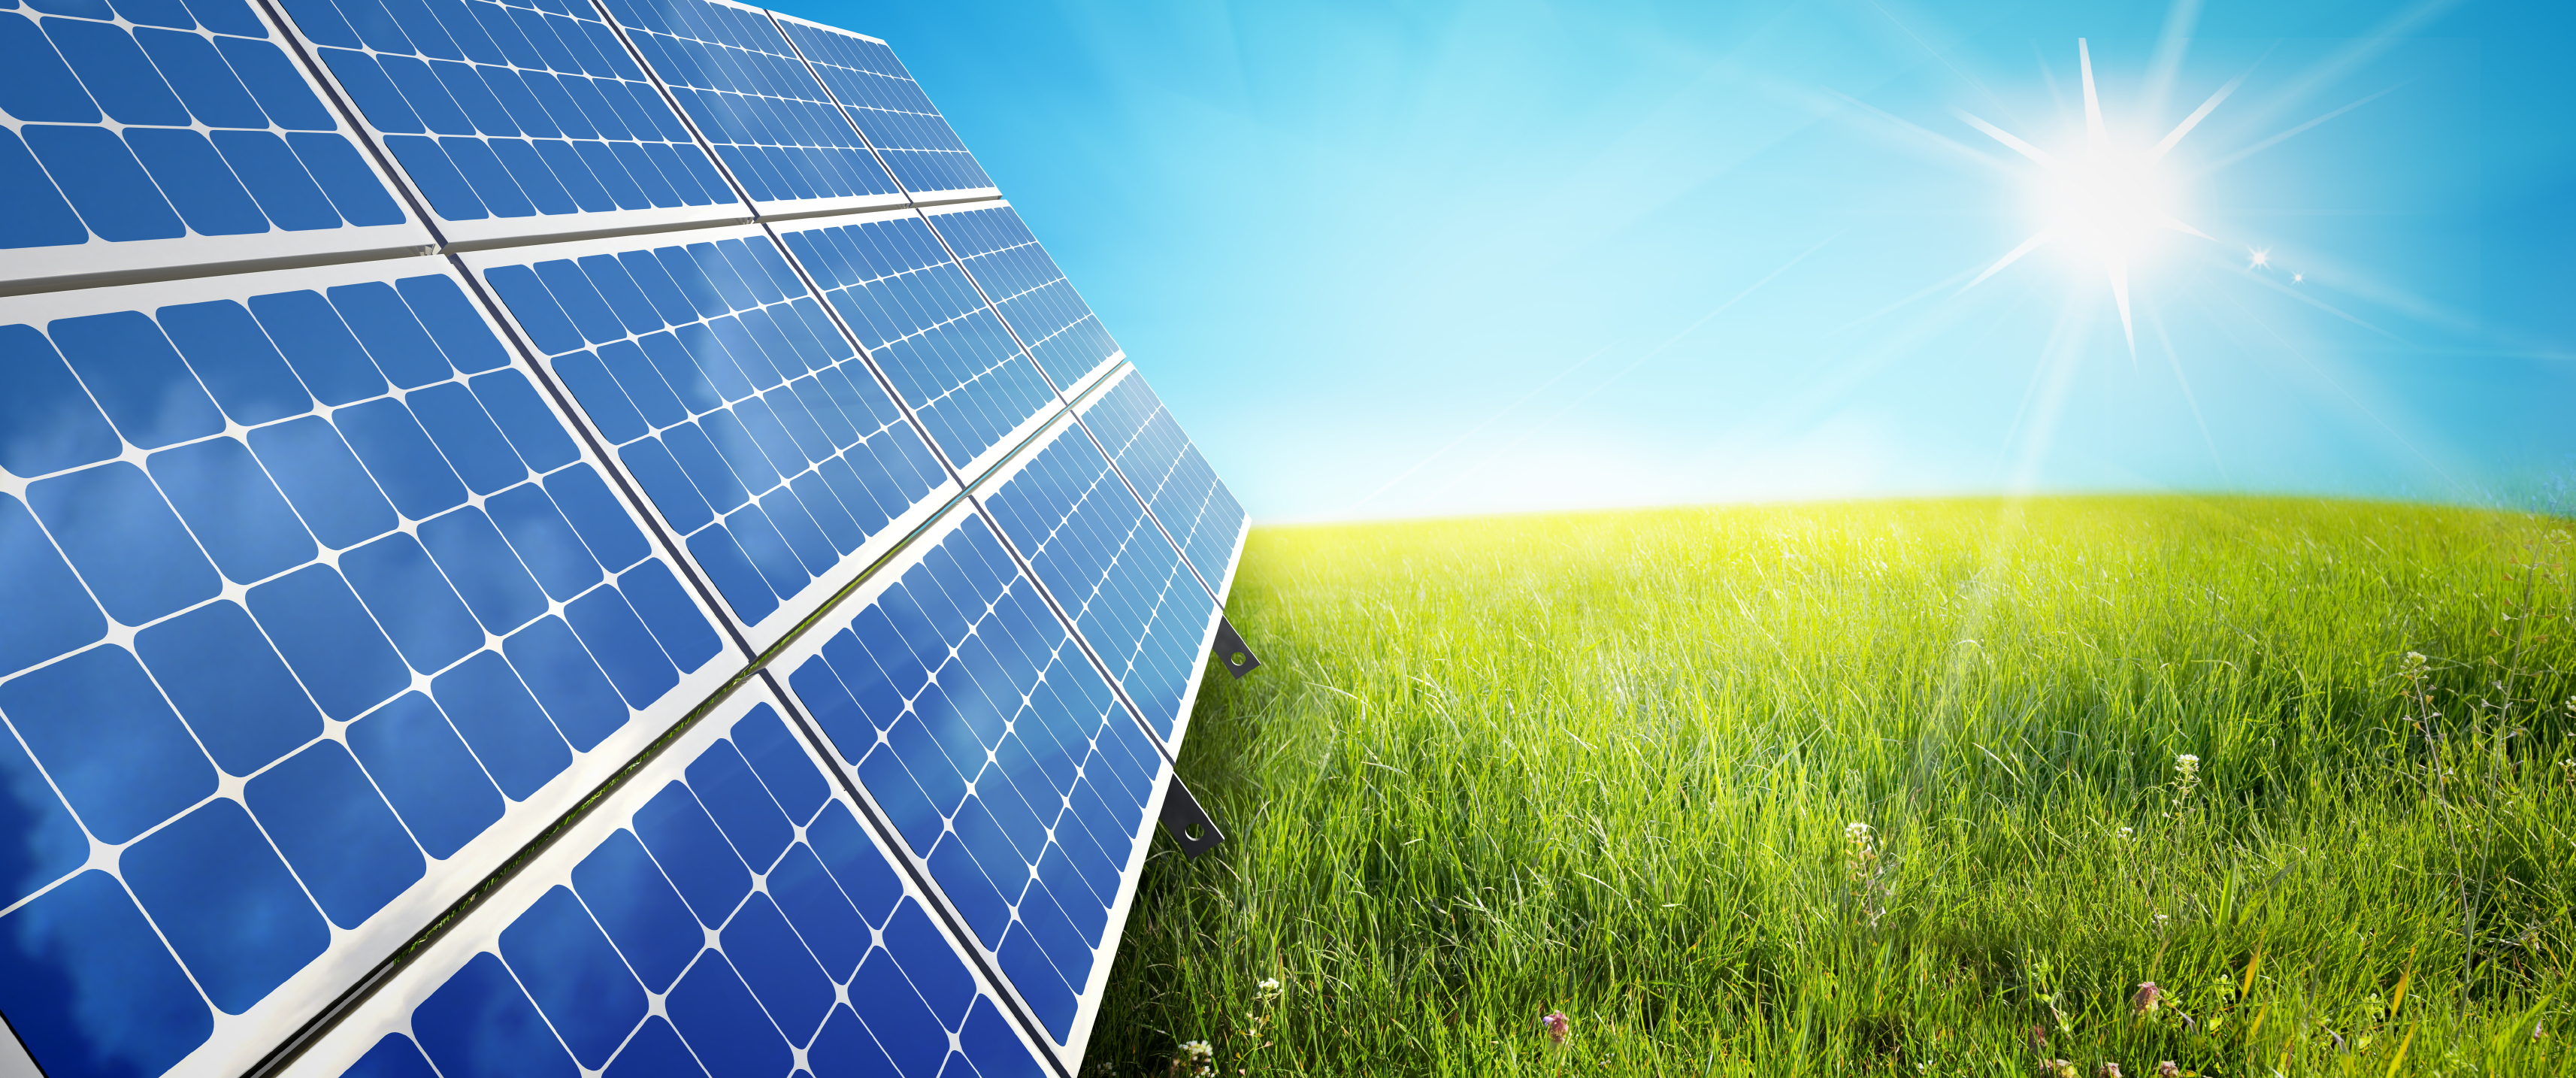 fpl to add another 1 500 megawatts of solar over the next seven